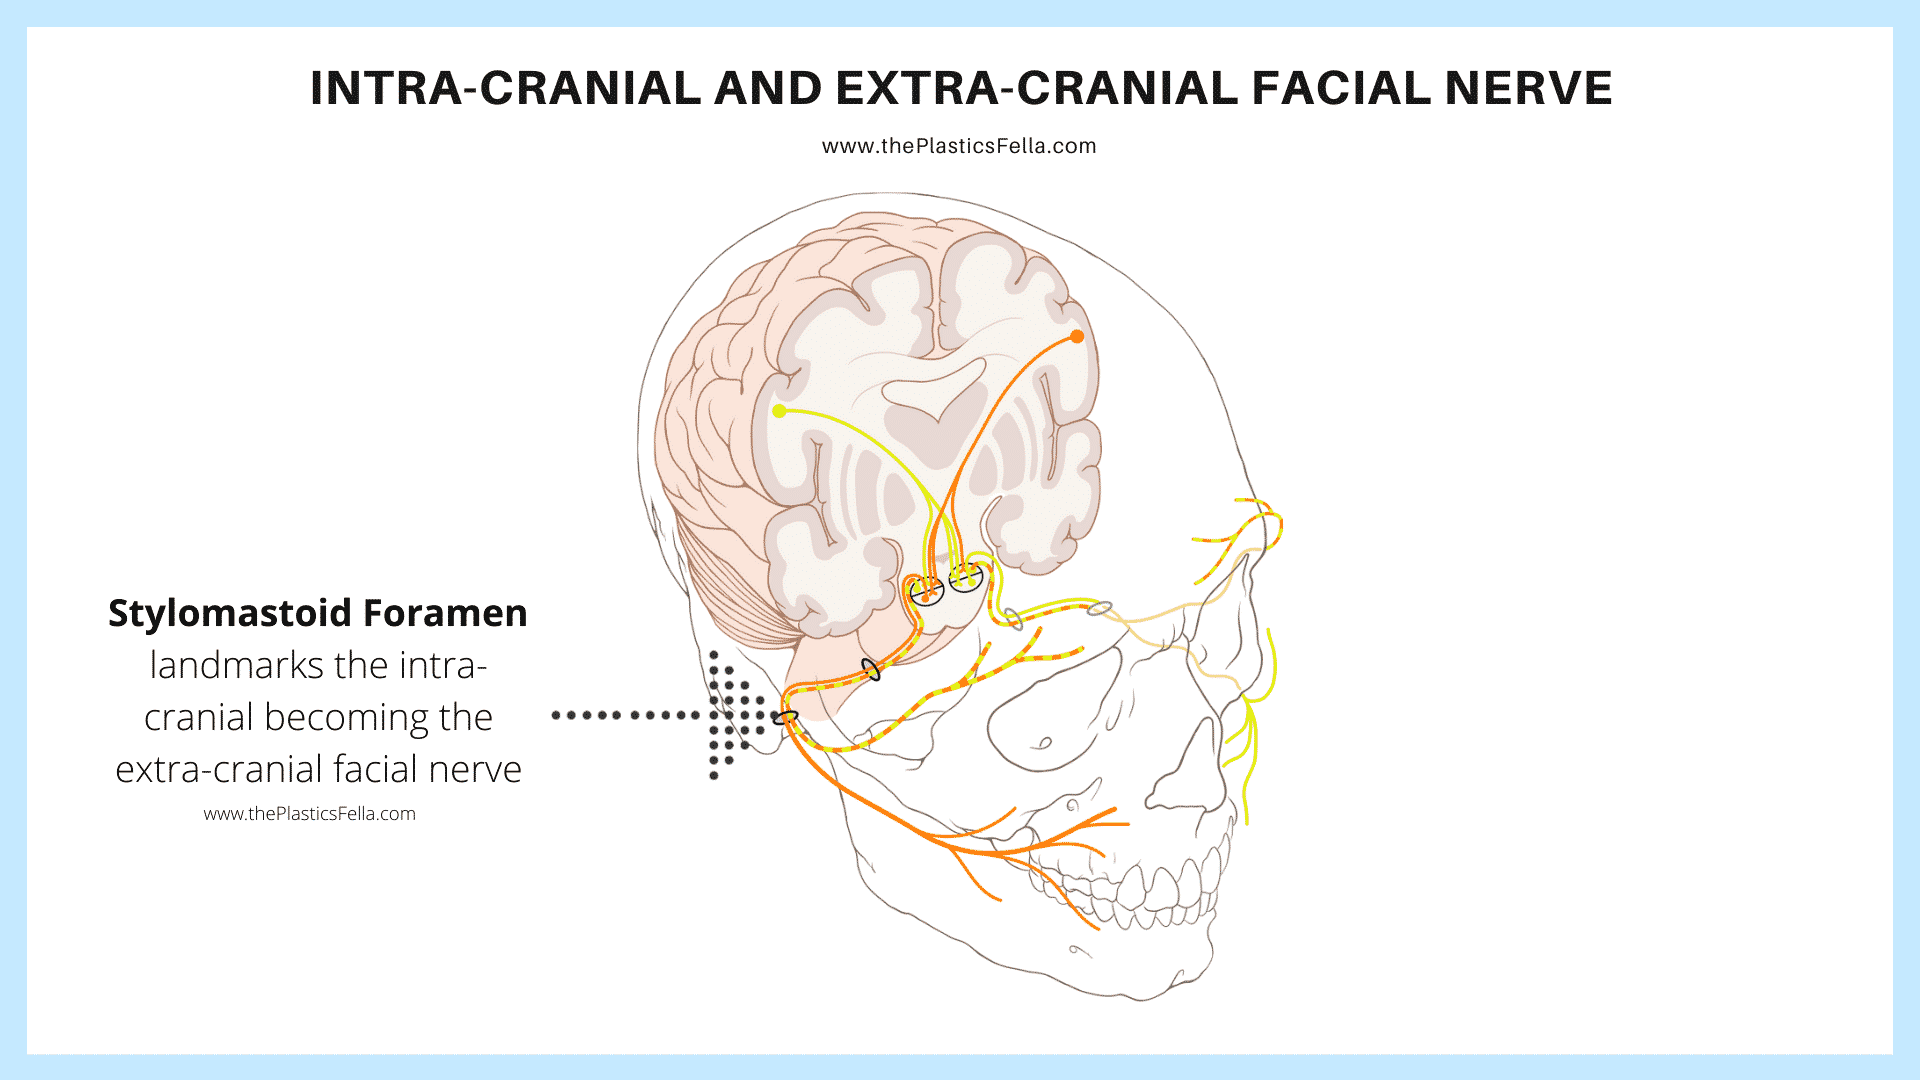 Stylomastoid Foramen is the location for the intra-cranial facial nerve becoming extra-cranial.